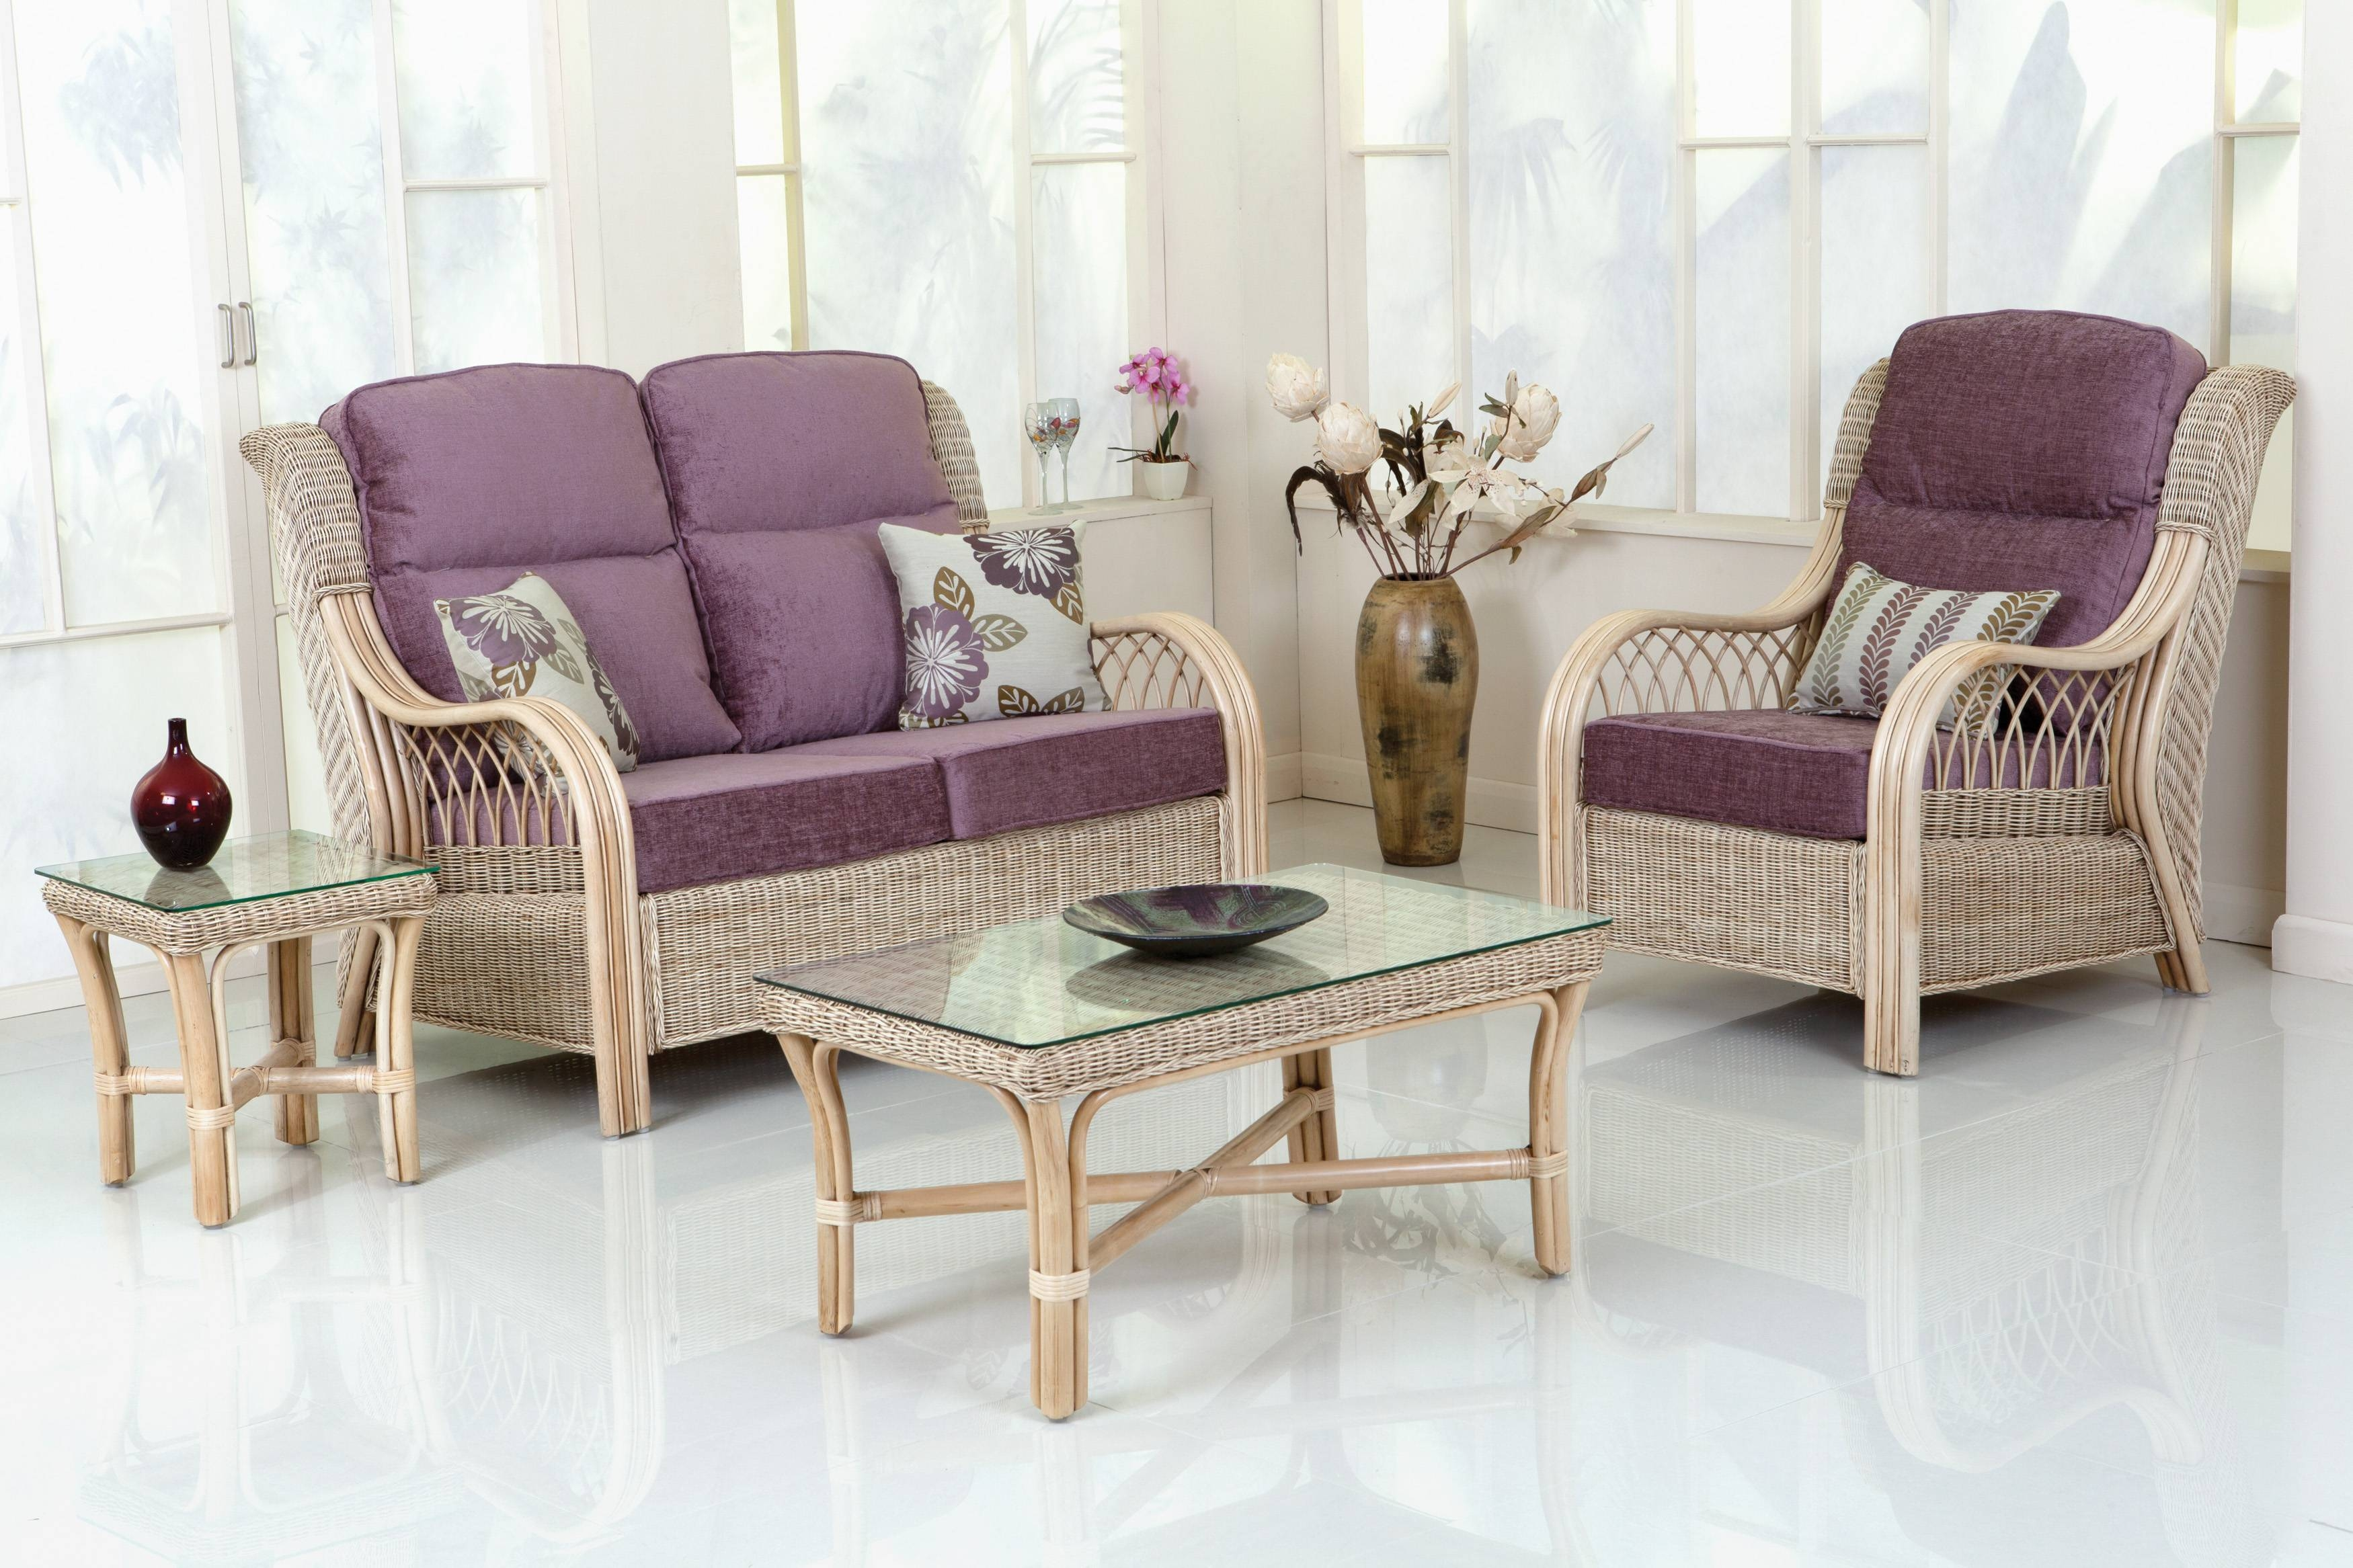 Modern Concept Cane Kitchen Chairs With Cane Furniture Sofa Set intended for White Cane Sofas (Image 21 of 30)